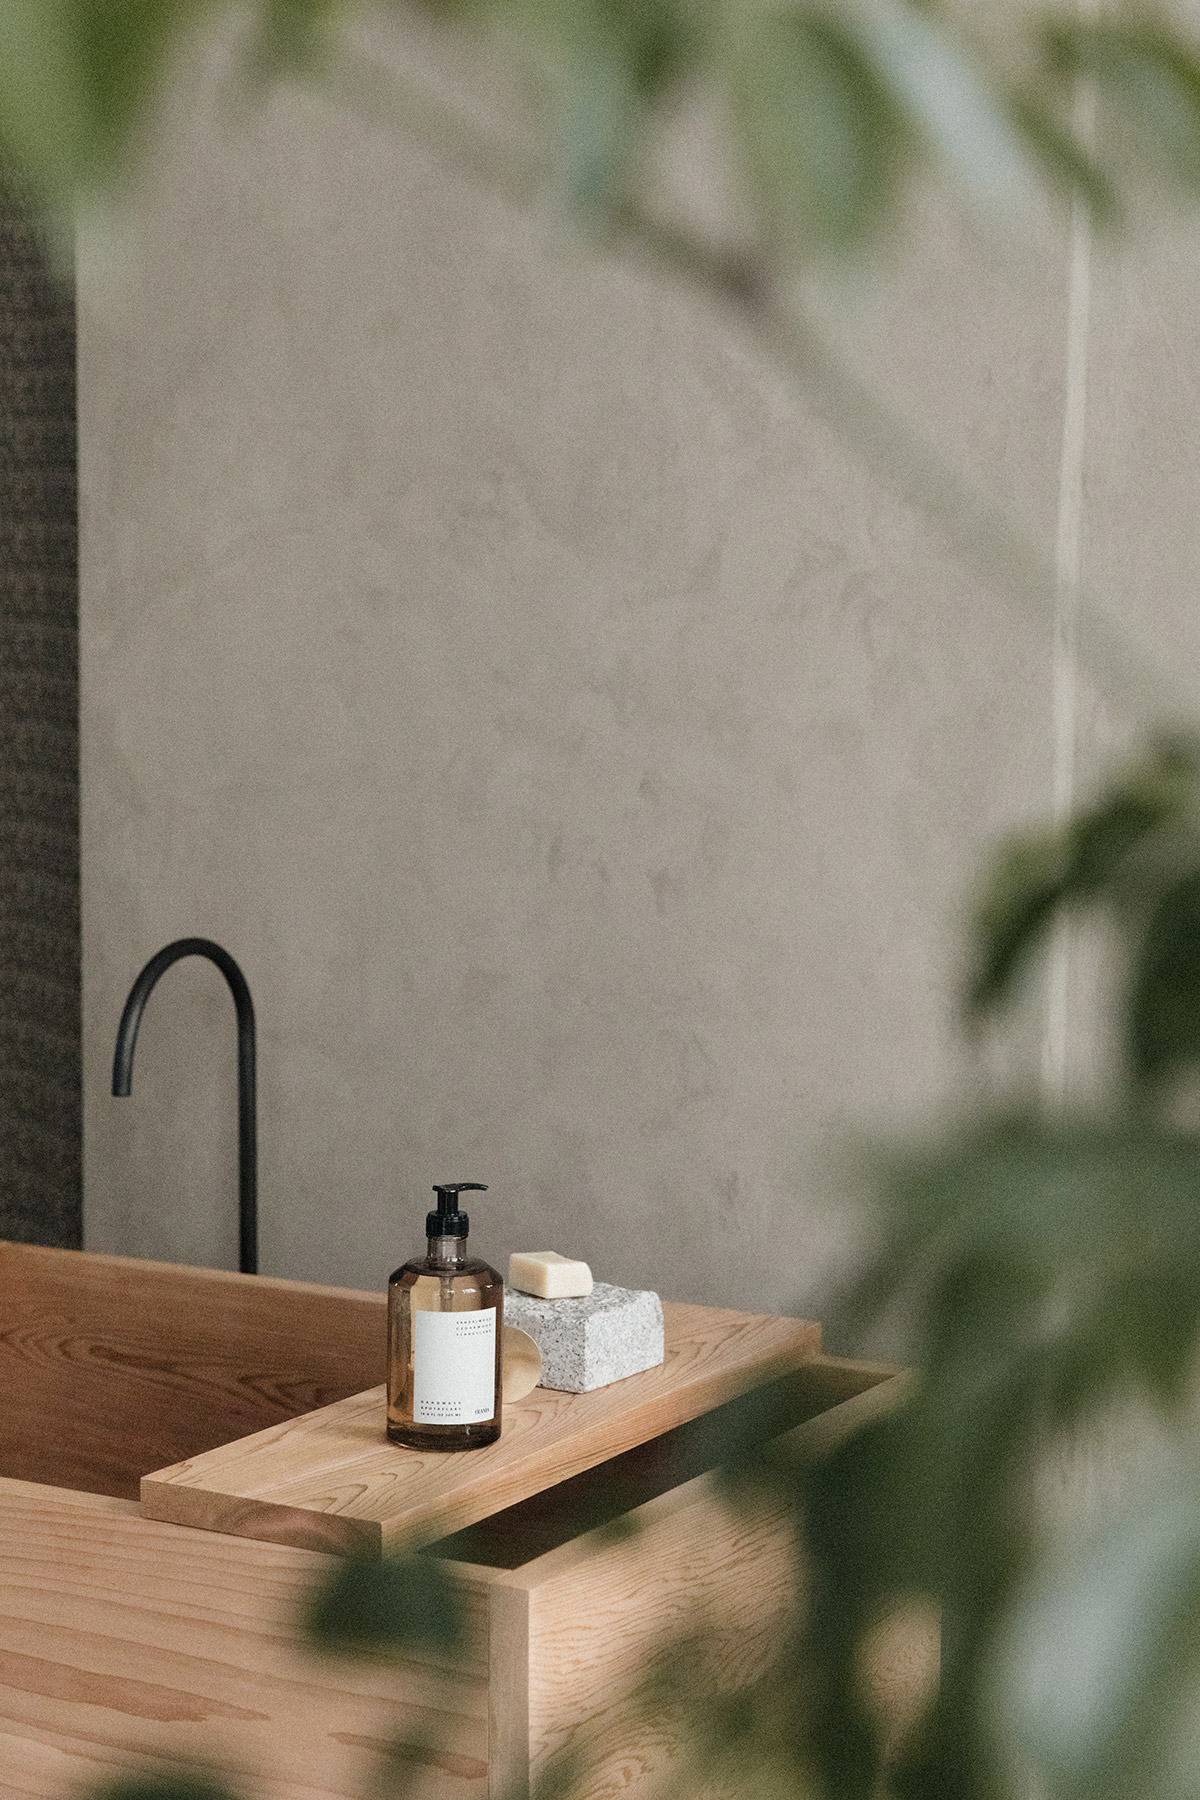 wooden bath tub against raw rendered wall surrounded by tranquil plants